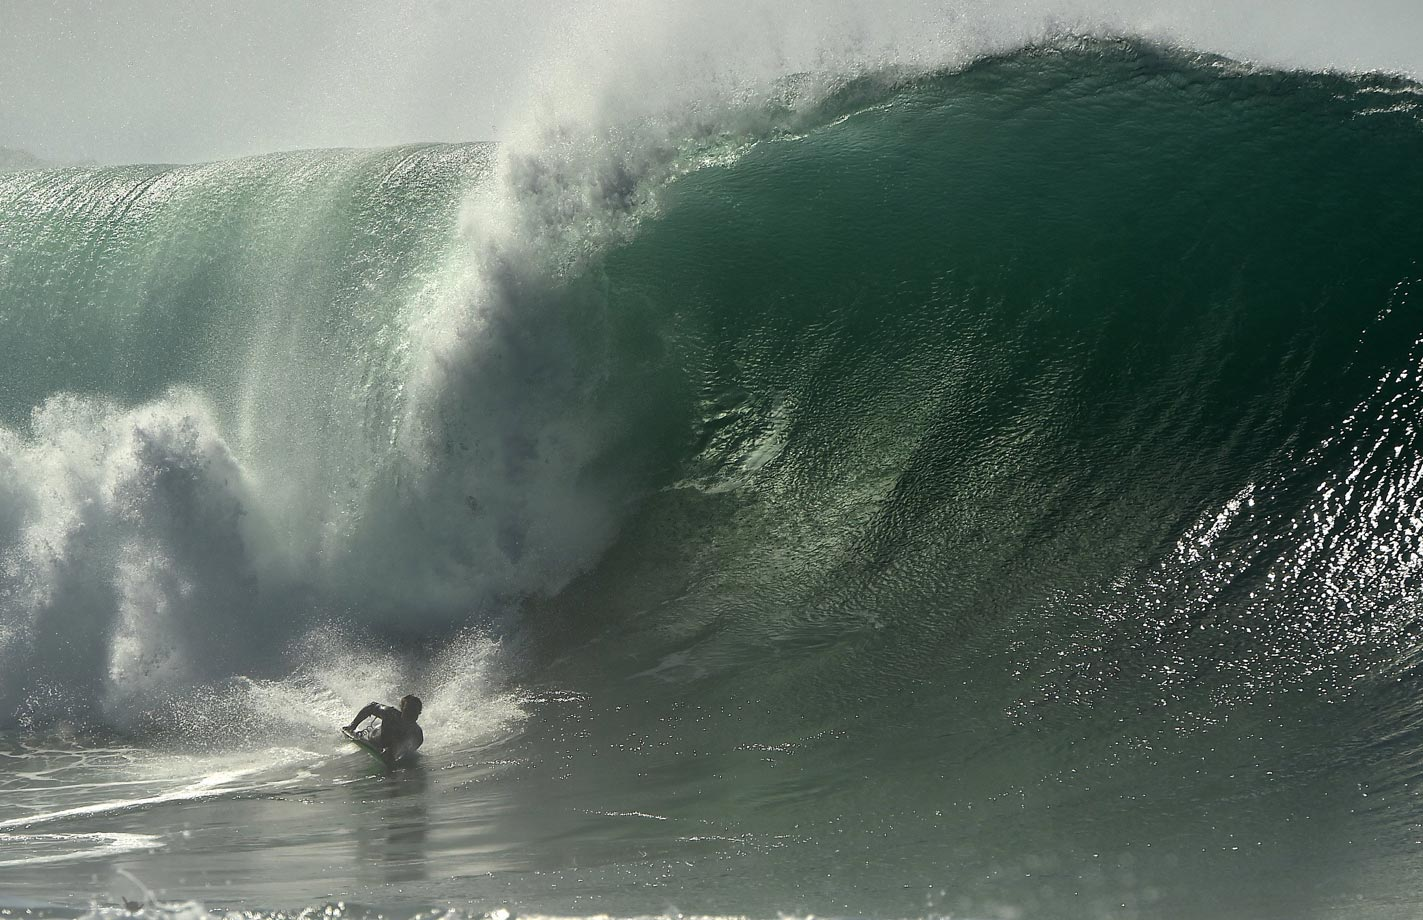 With Hurricane Marie creating larger than usual waves along the California coastline, SI photographer Robert Beck took advantage of the rare occurrence and captured these images.